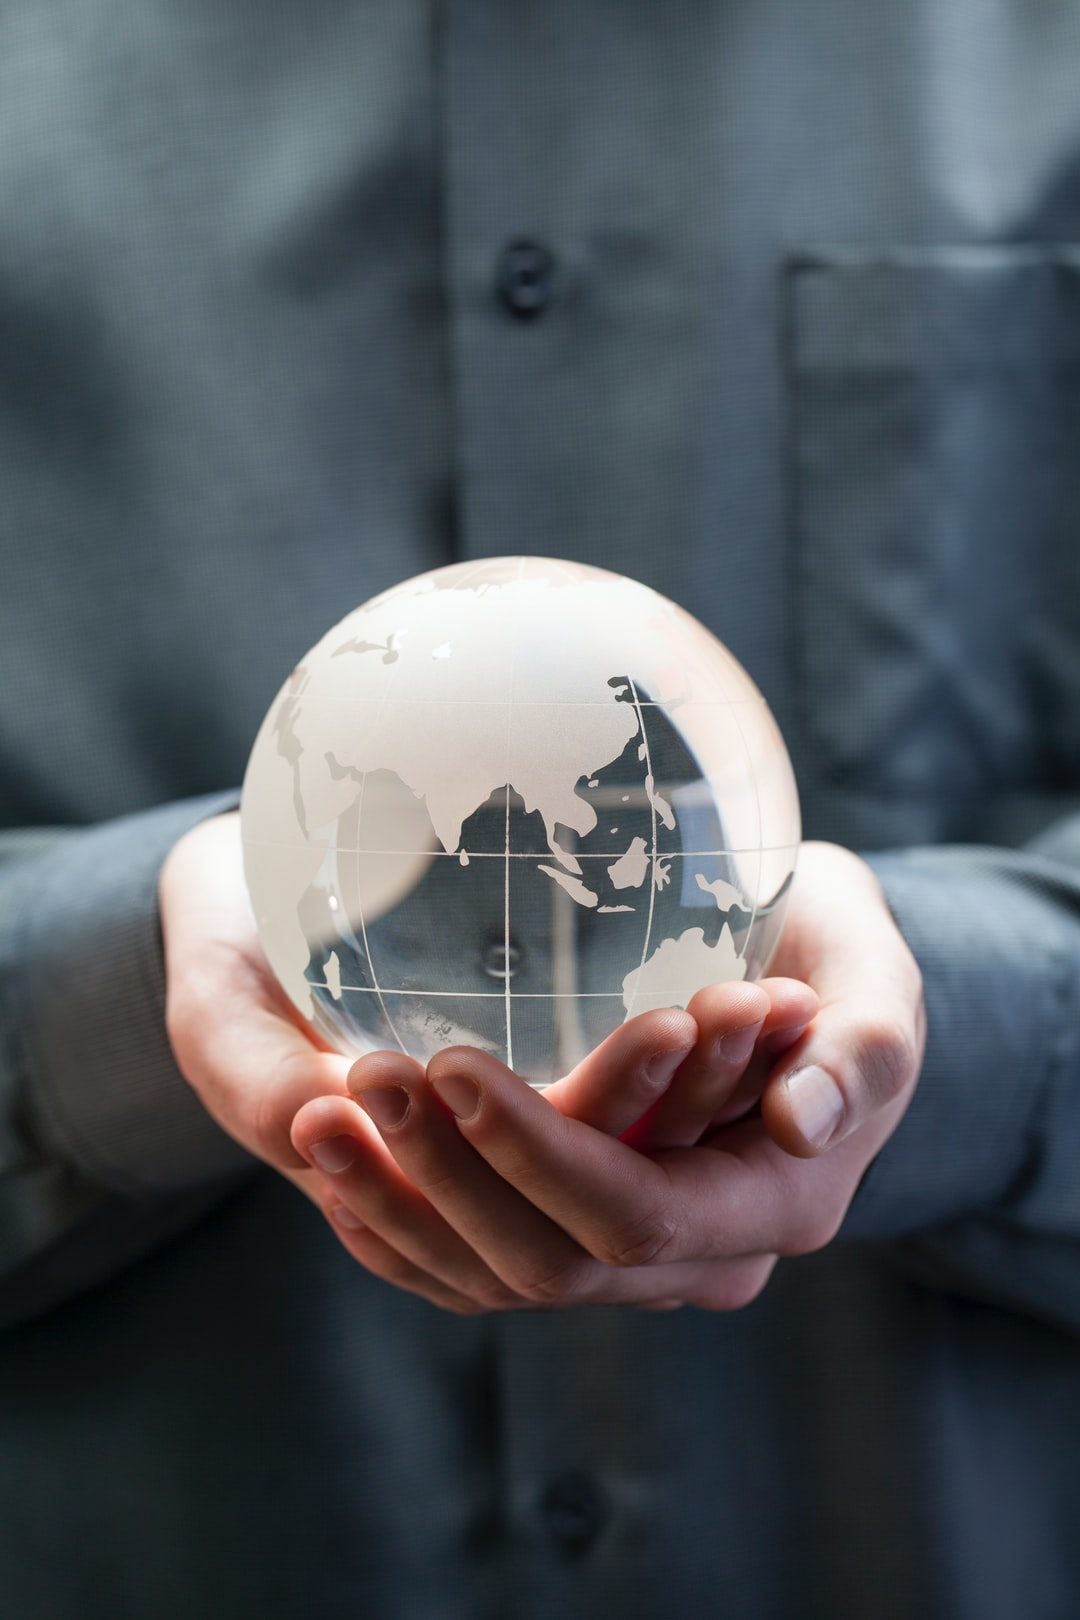 Man holding glass globe in hands. Concept for CHINA global warming, climate change, environmental protection.